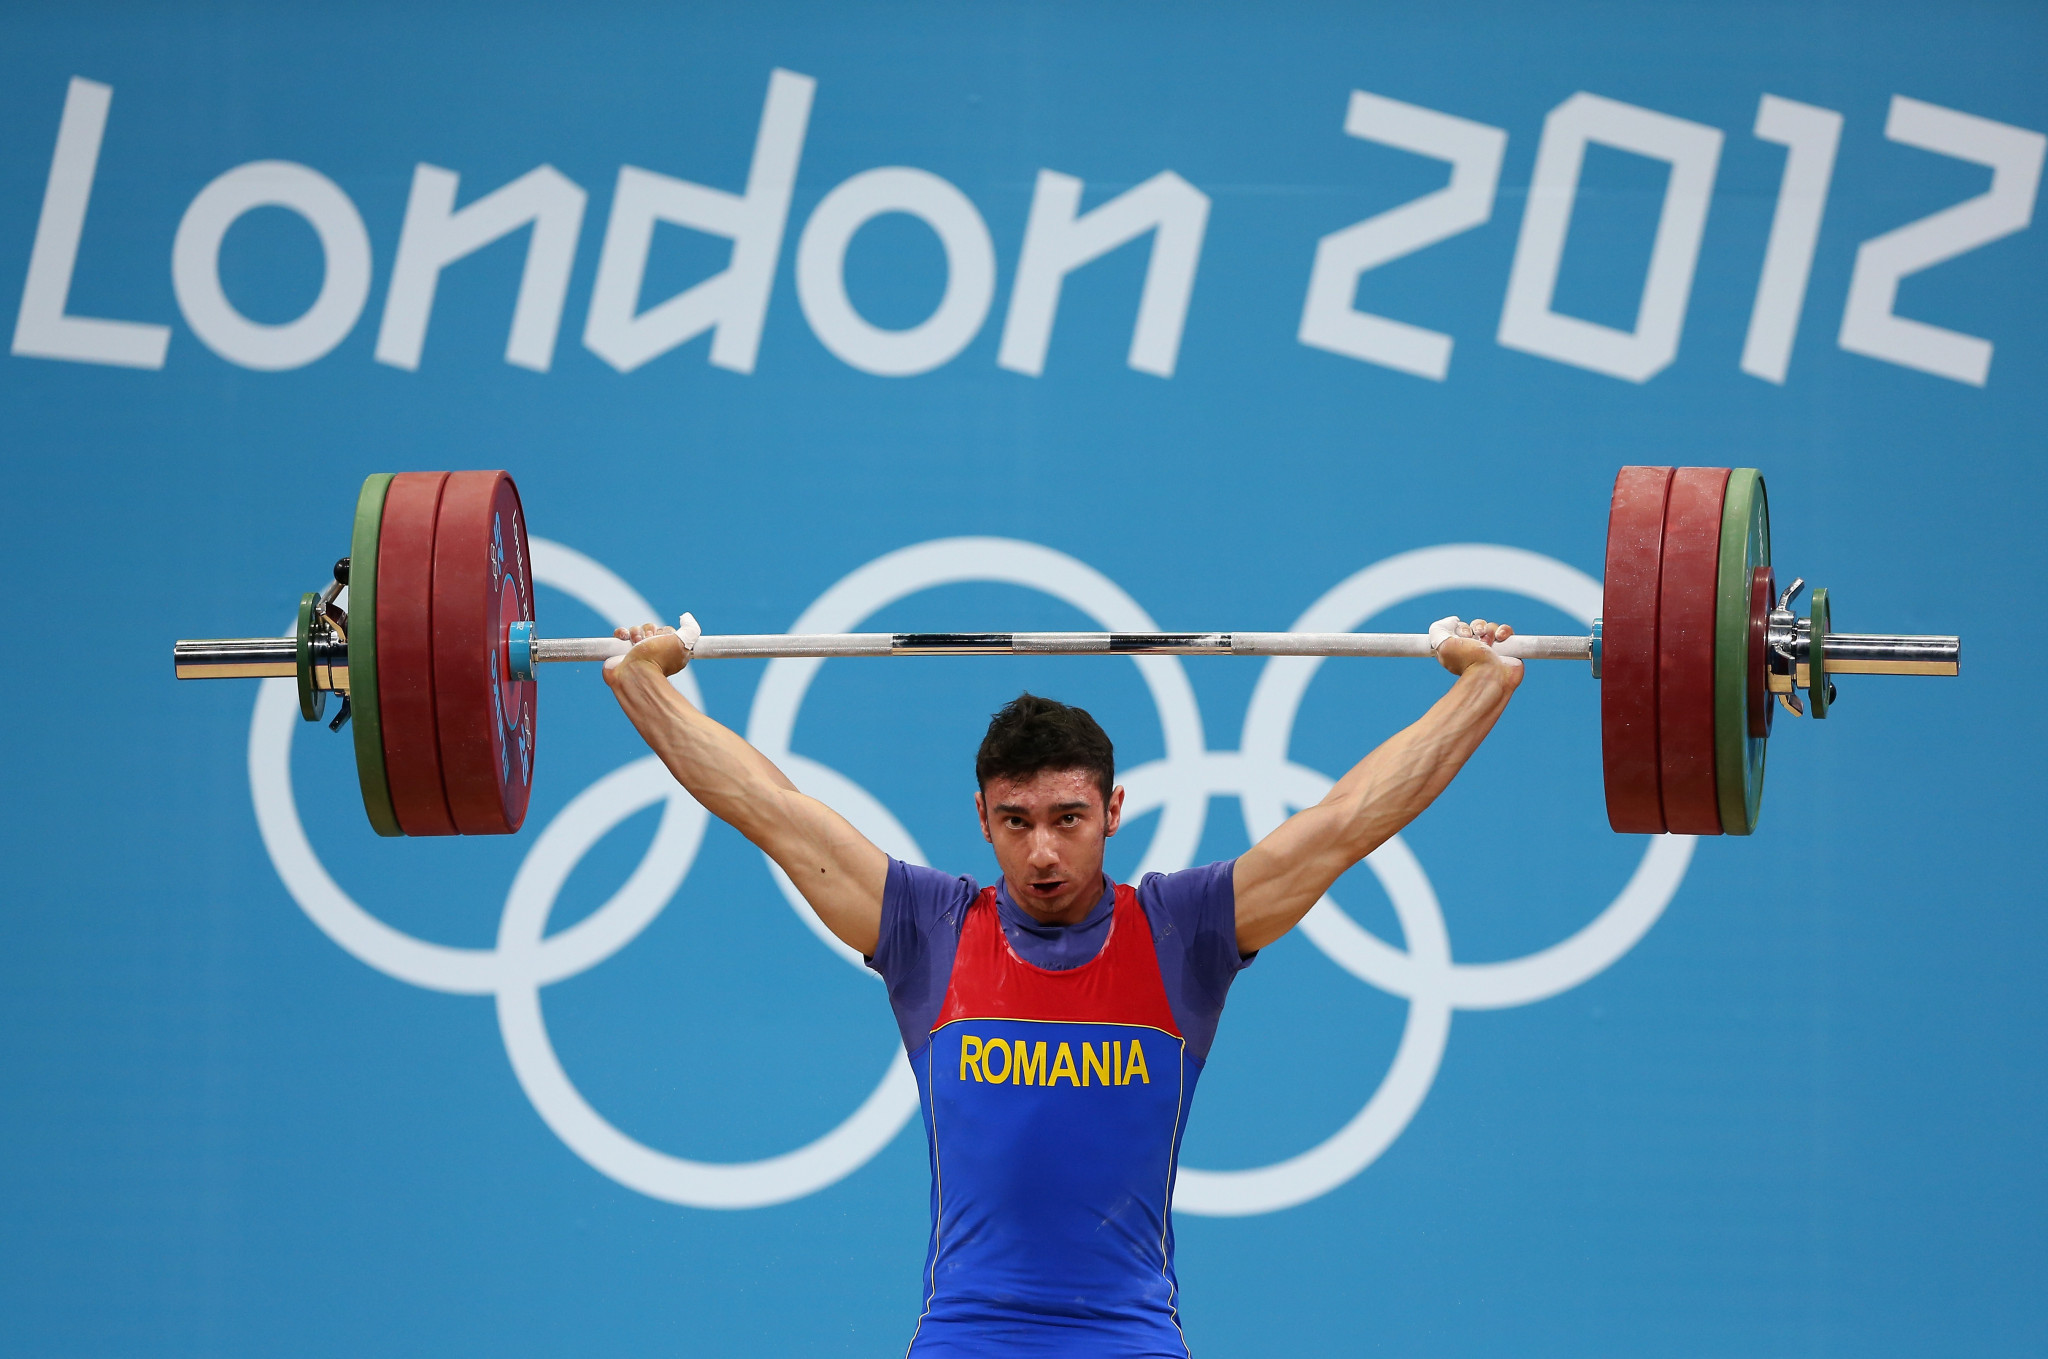 Romania faces ban after two London 2012 weightlifting medallists test positive